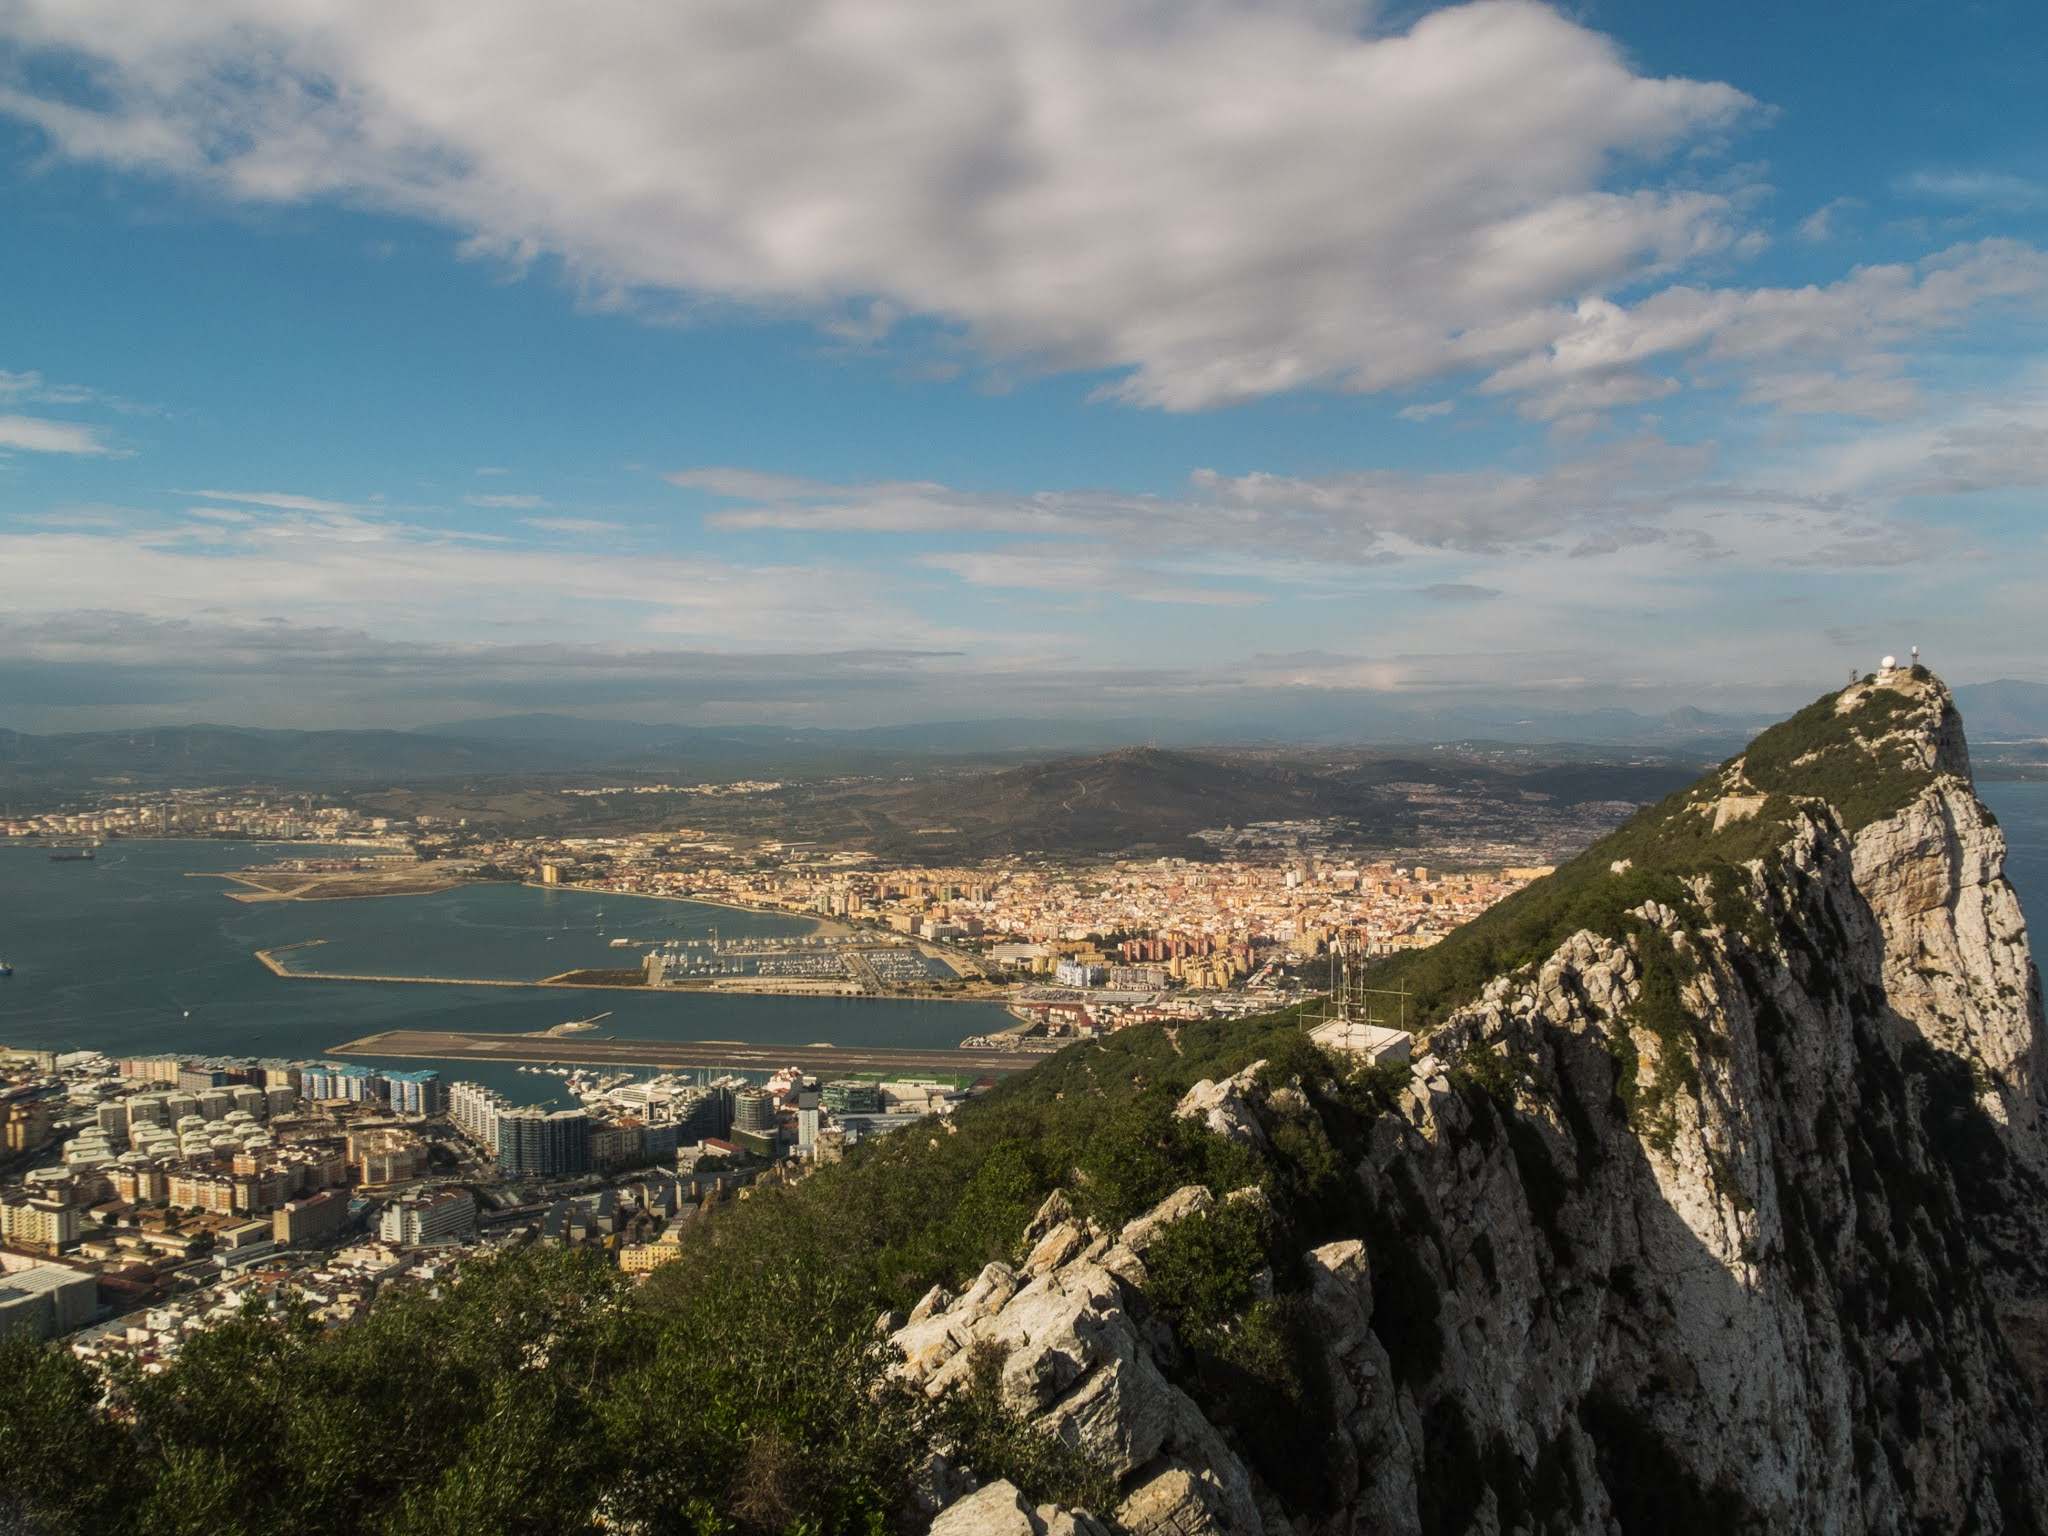 Views from the top of the rock in Gibraltar.